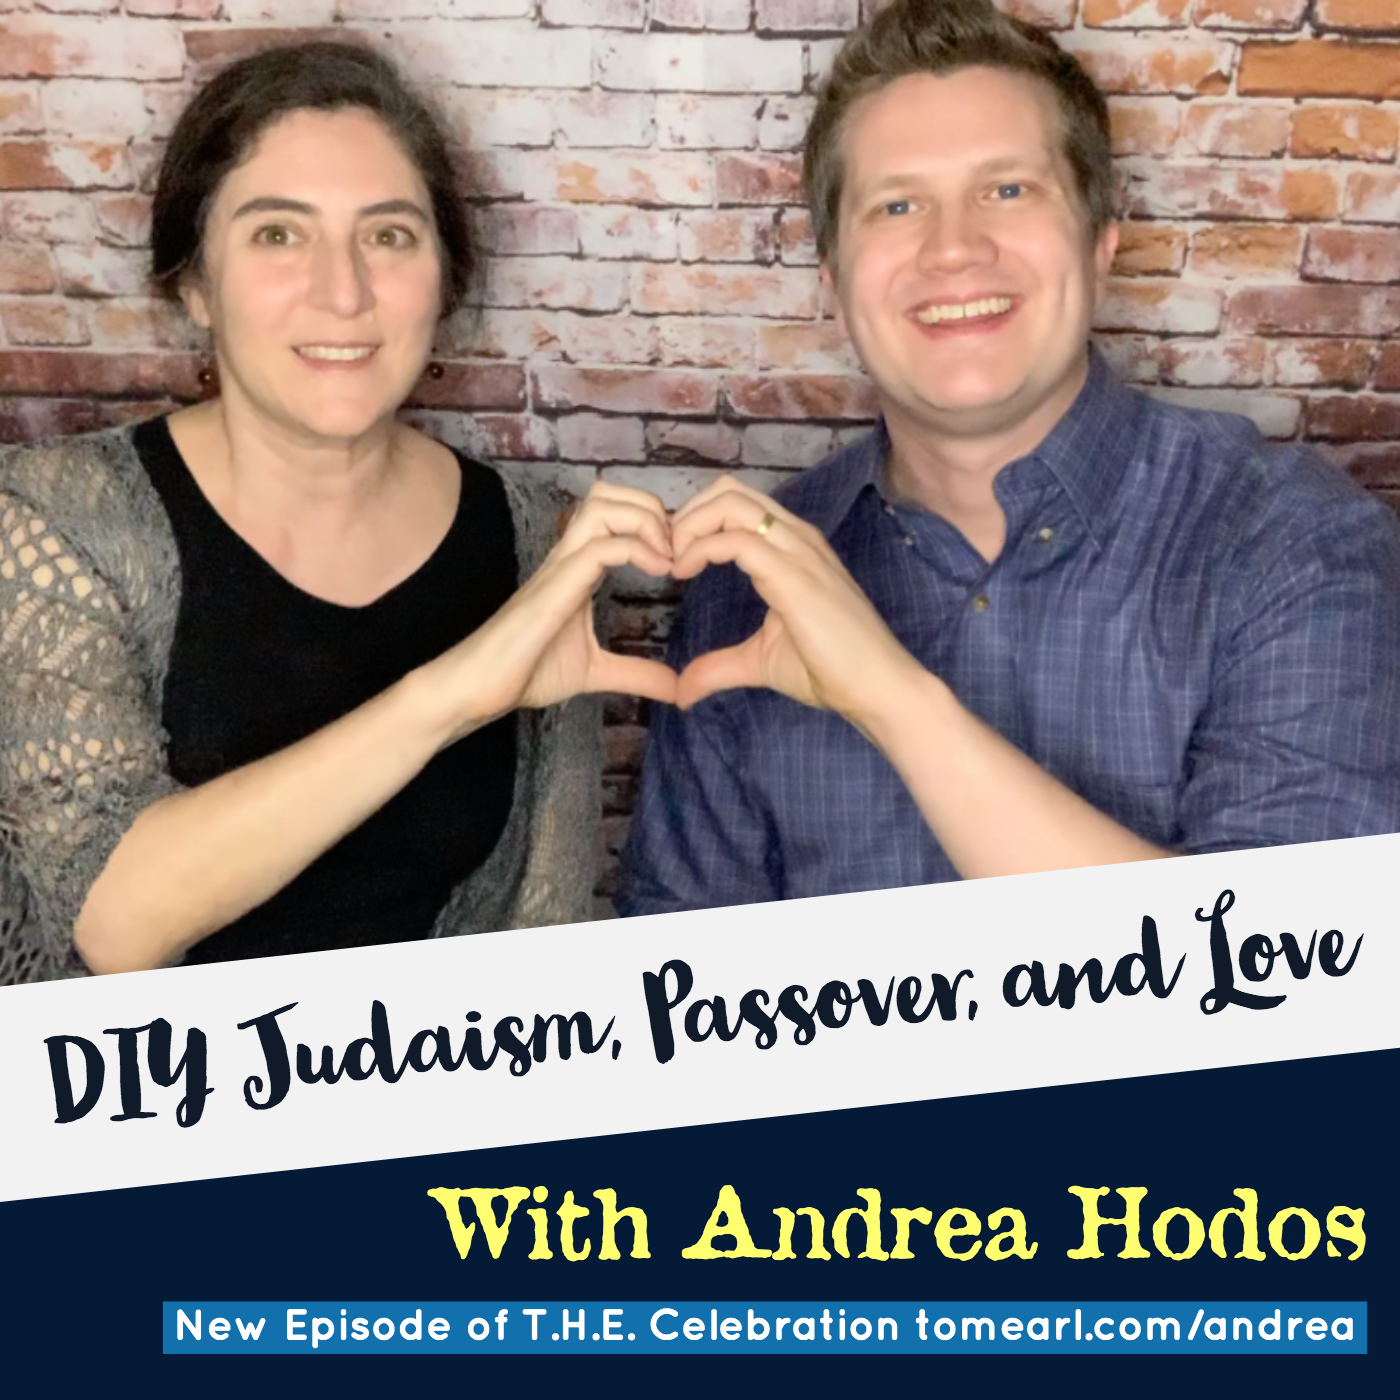 diy judaism podcast.jpg